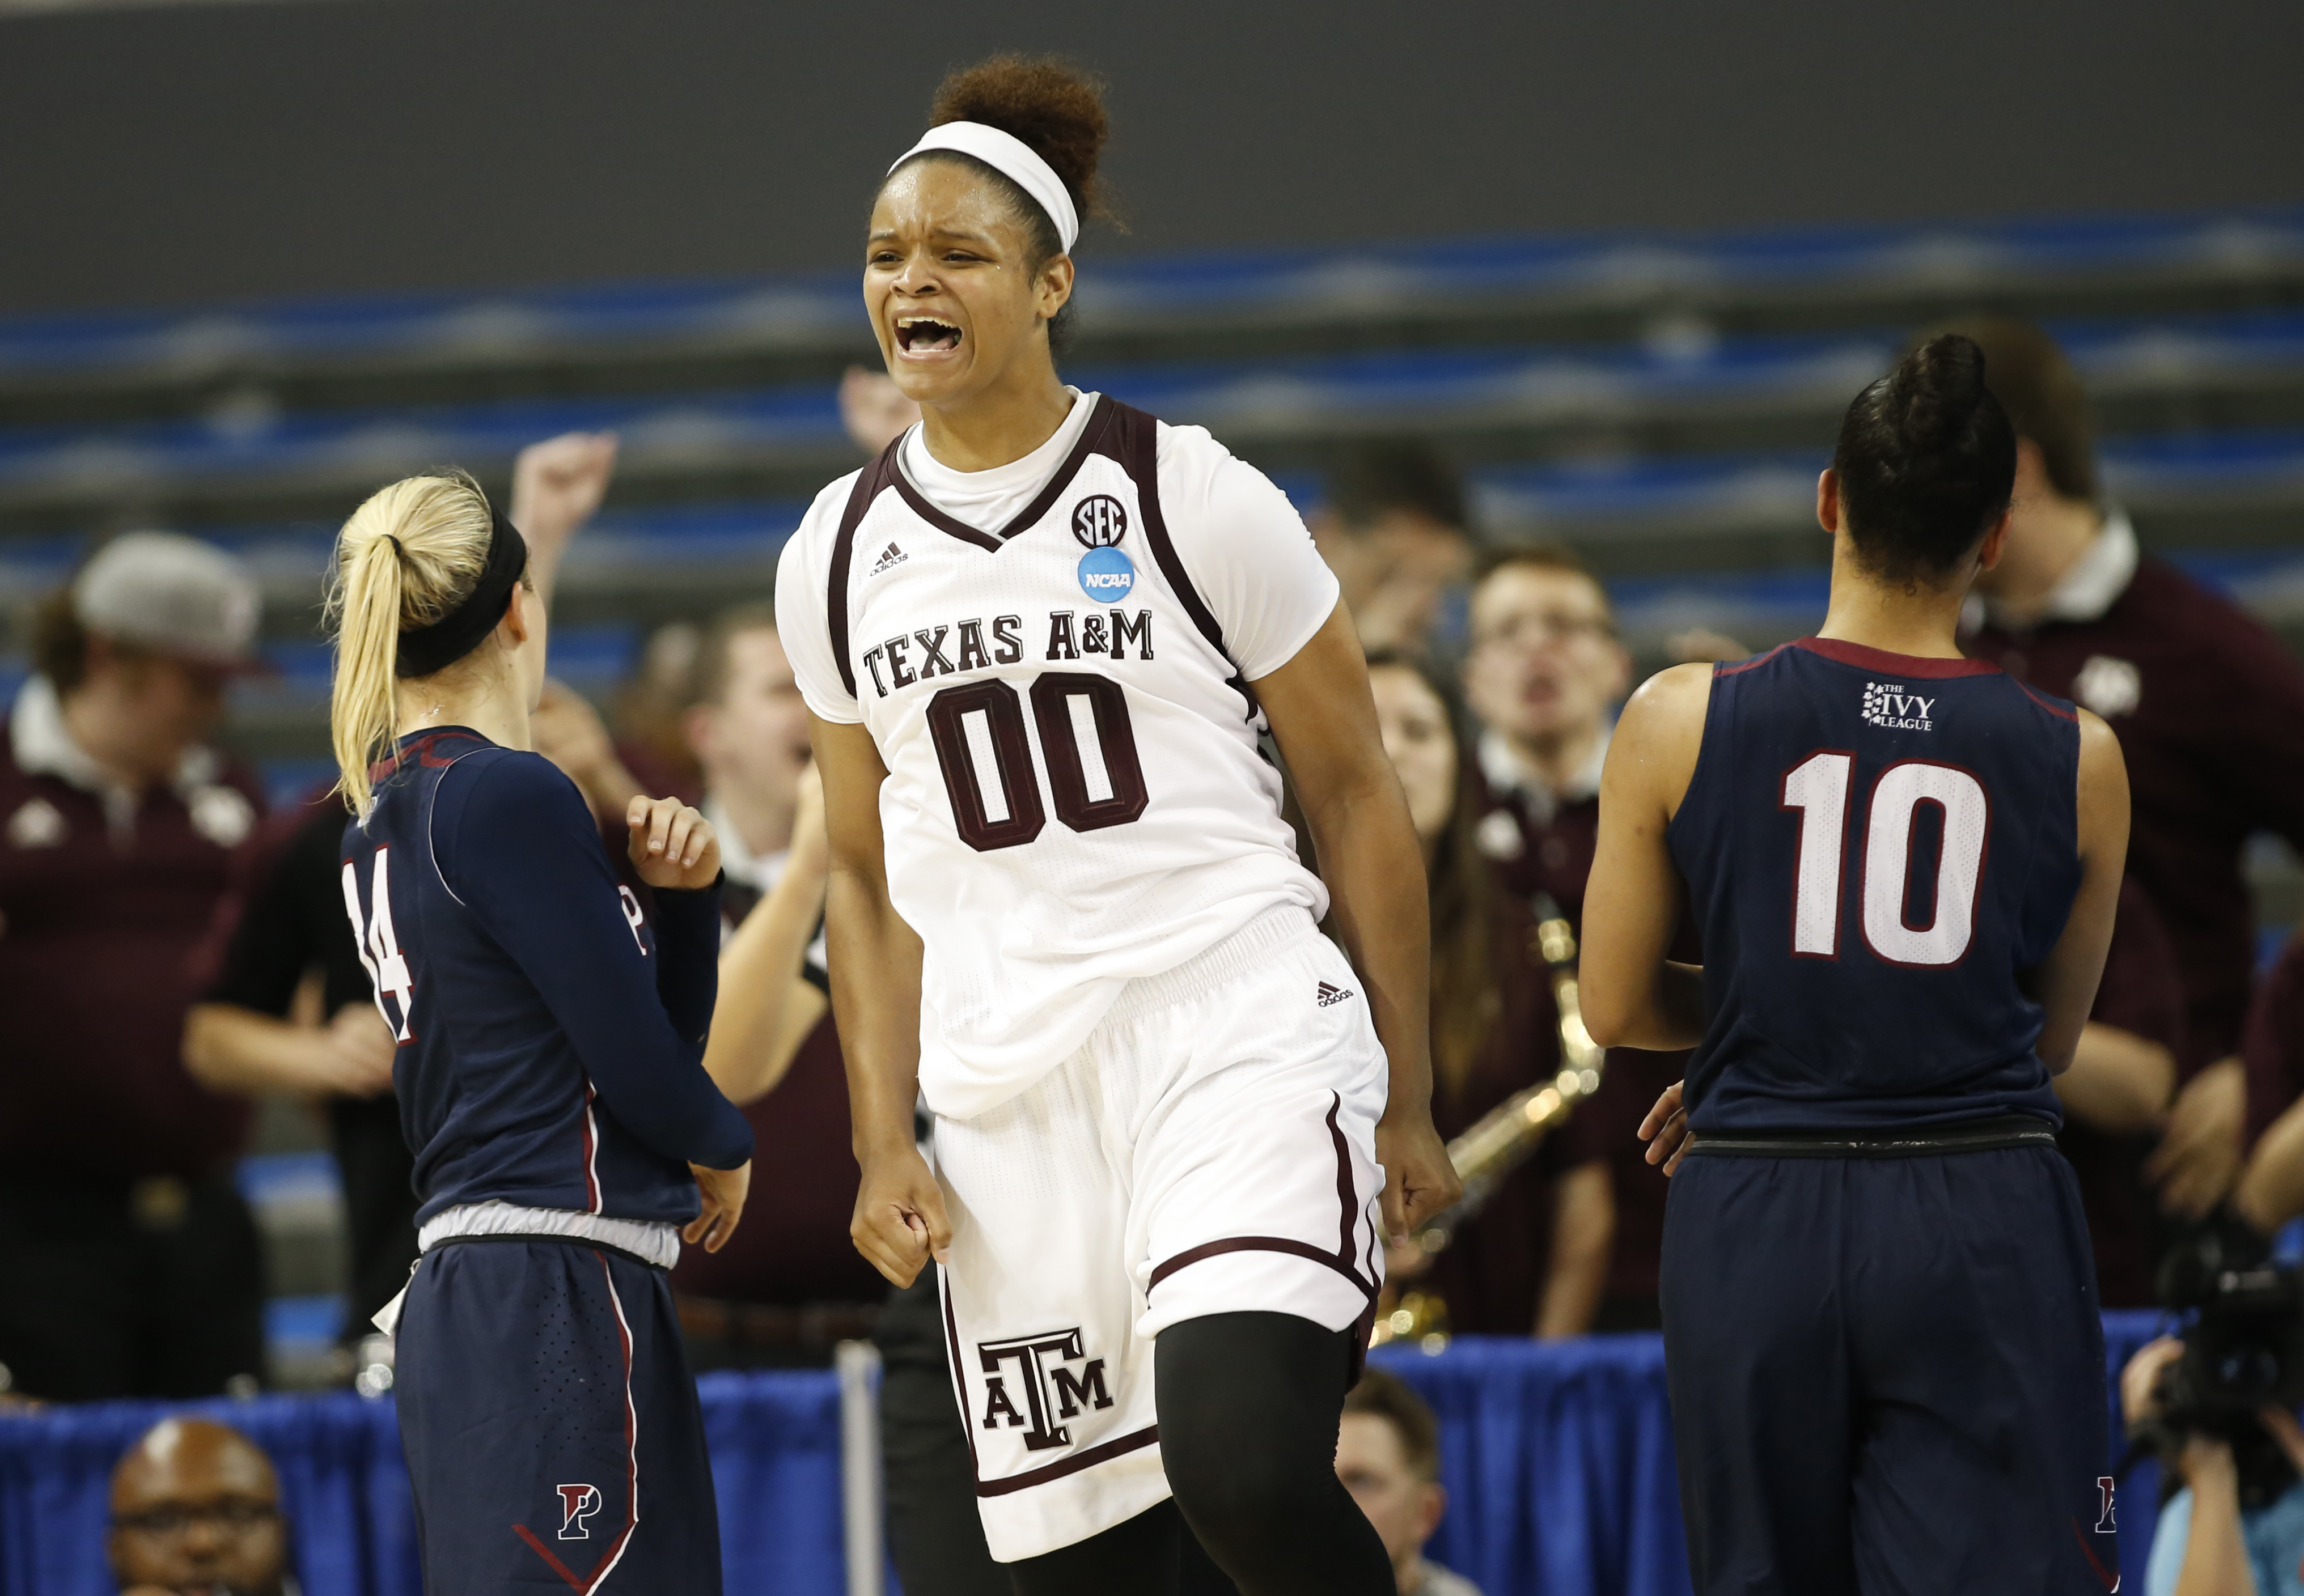 Texas A&M center Khaalia Hillsman celebrates after being fouled and still making her shot against Penn during the second half of a first-round game in the NCAA women's college basketball tournament, Saturday, March 18, 2017, in Los Angeles. (AP Photo/Dann